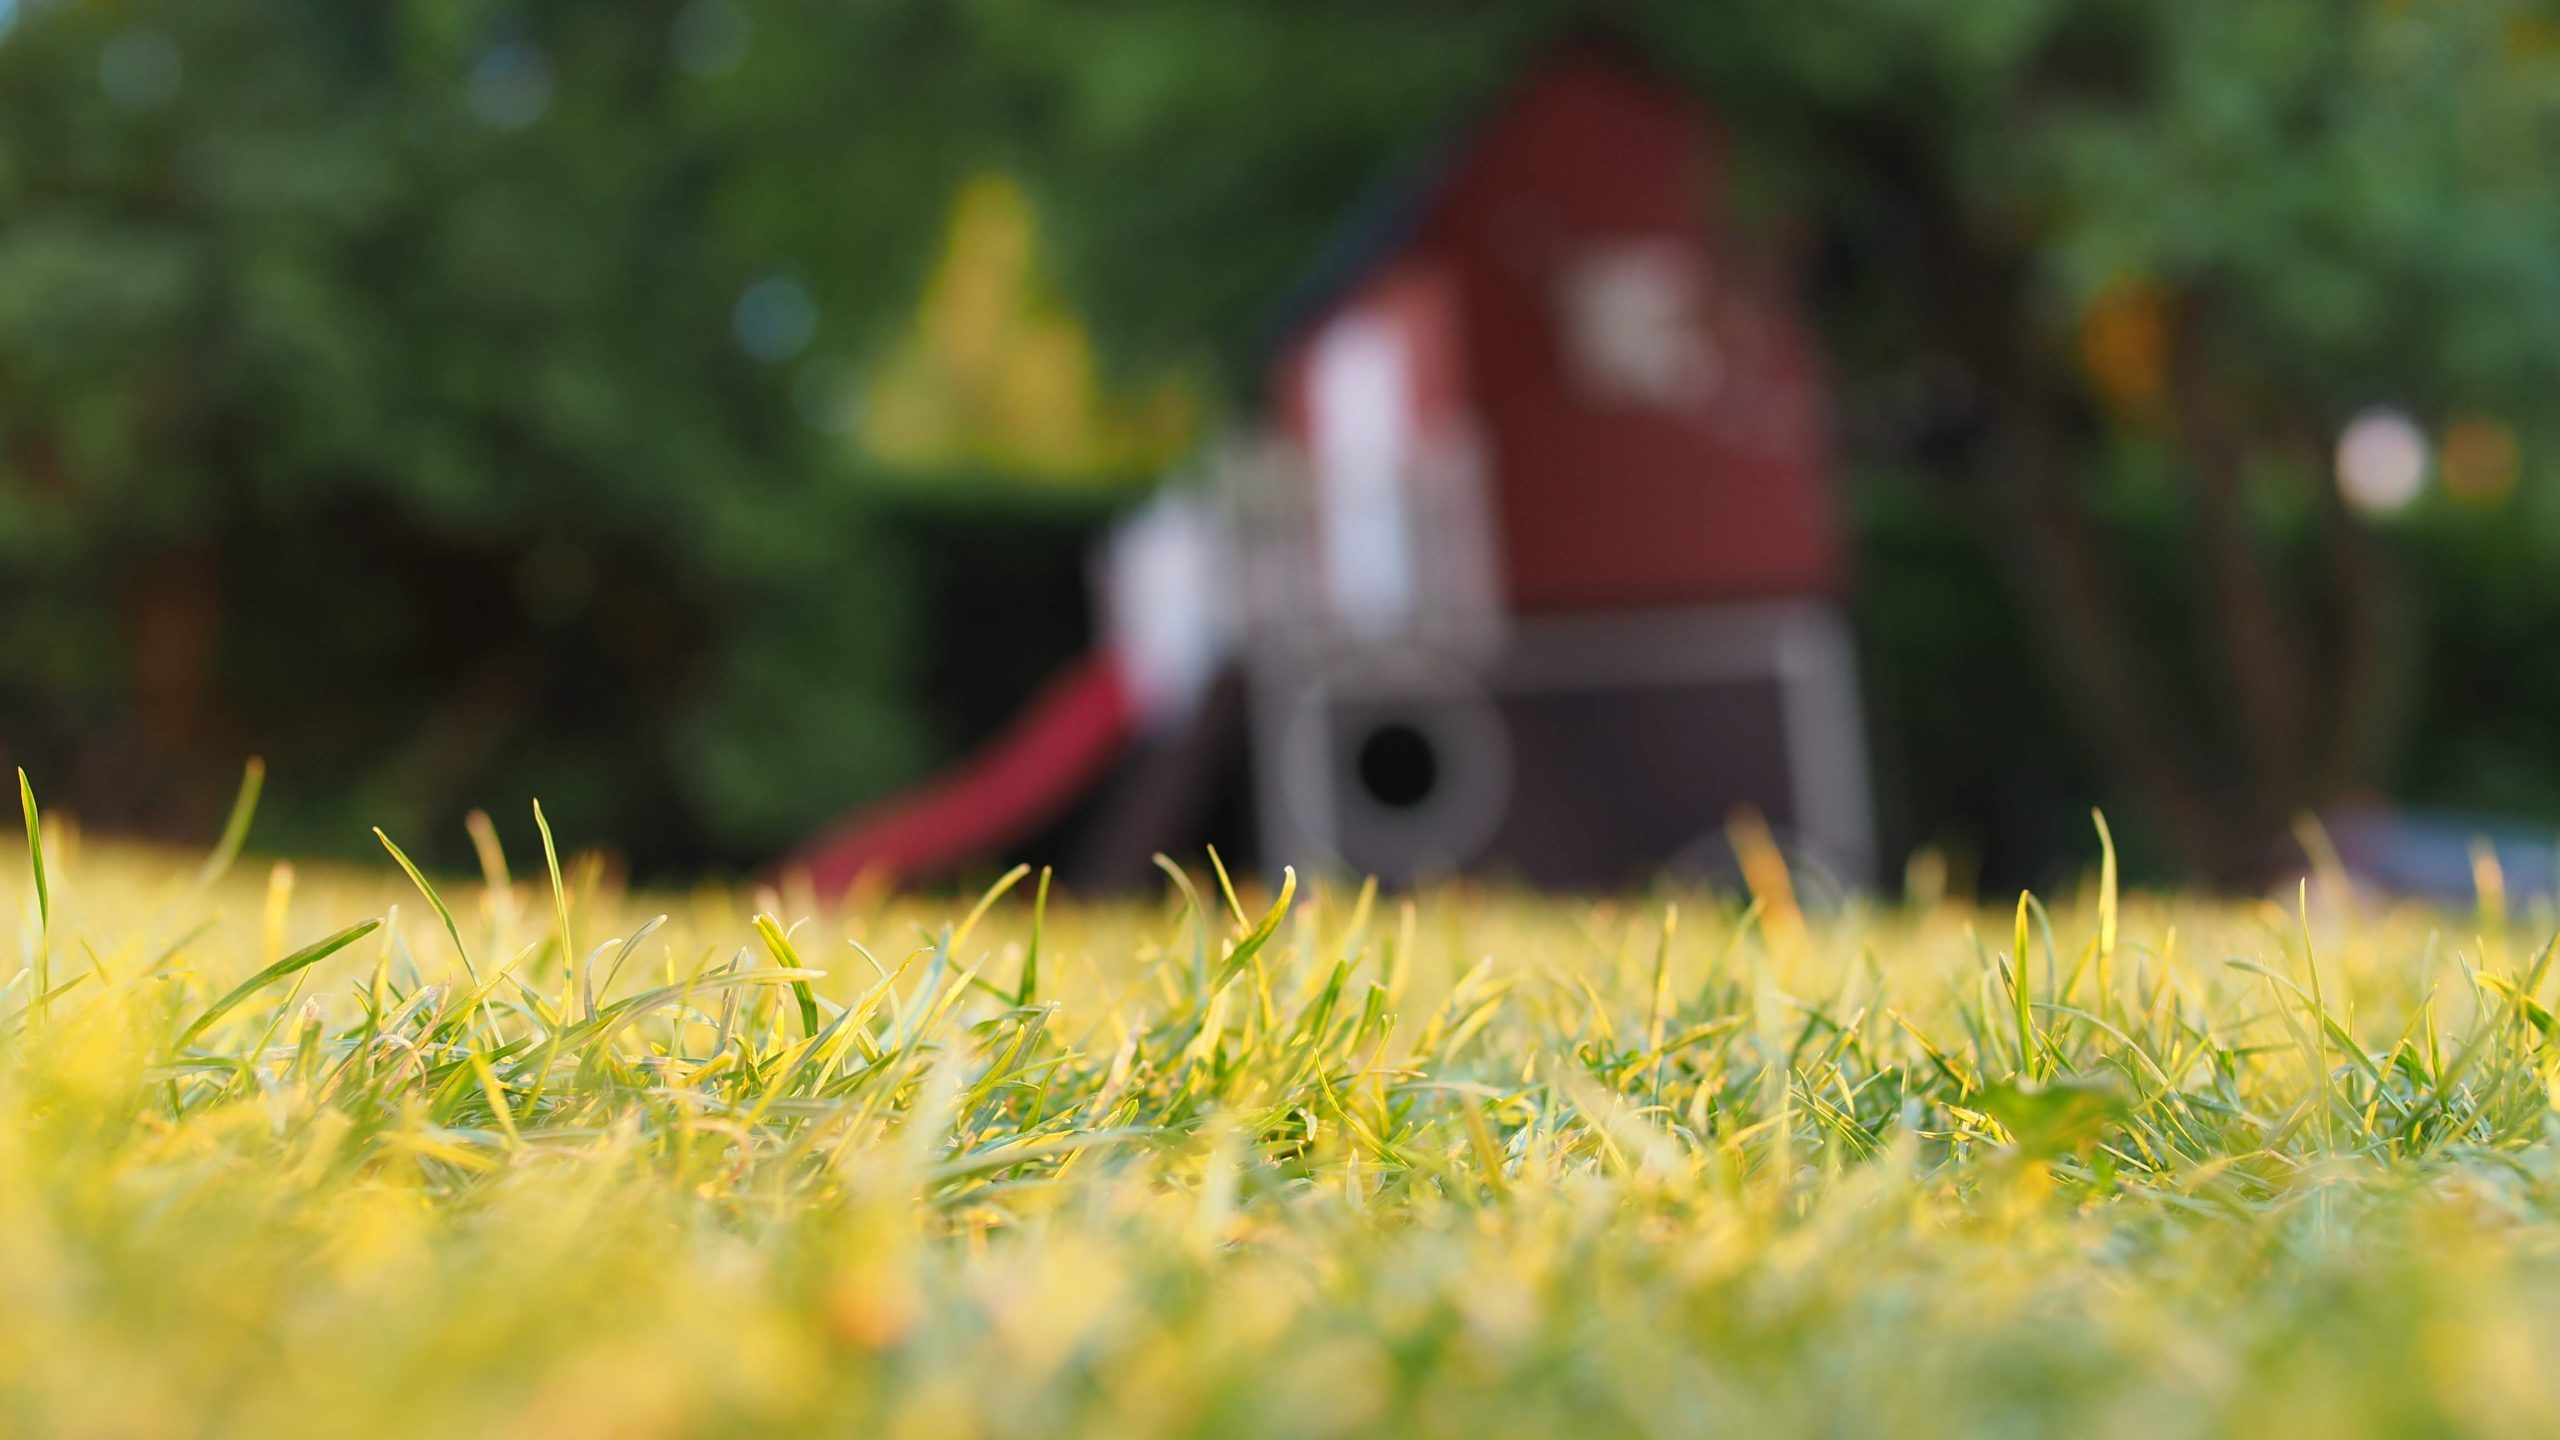 best local lawn care company in Draper mowing the lawn